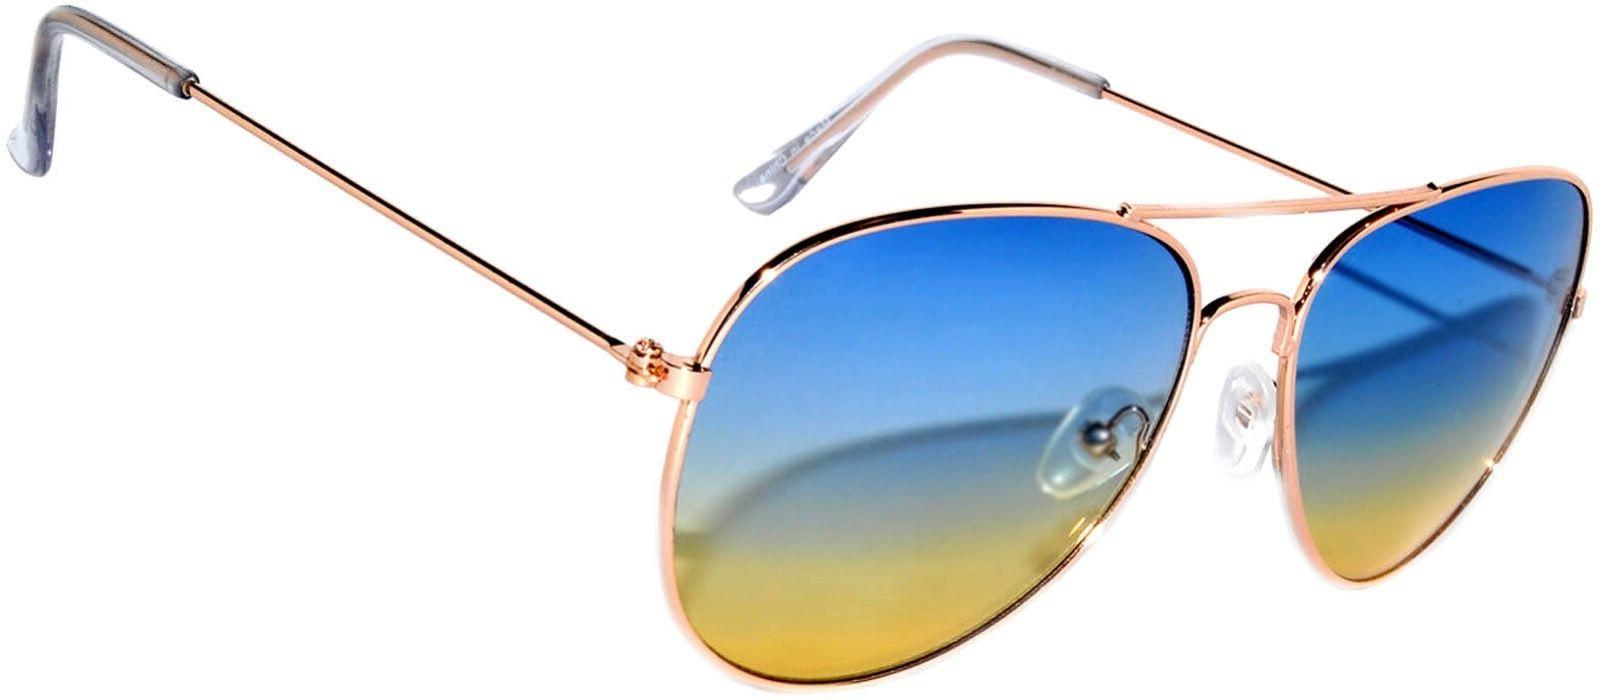 b668fc50ff49b OWL Sunglasses 064 C3 Women's Men's Aviator Gold Frame B